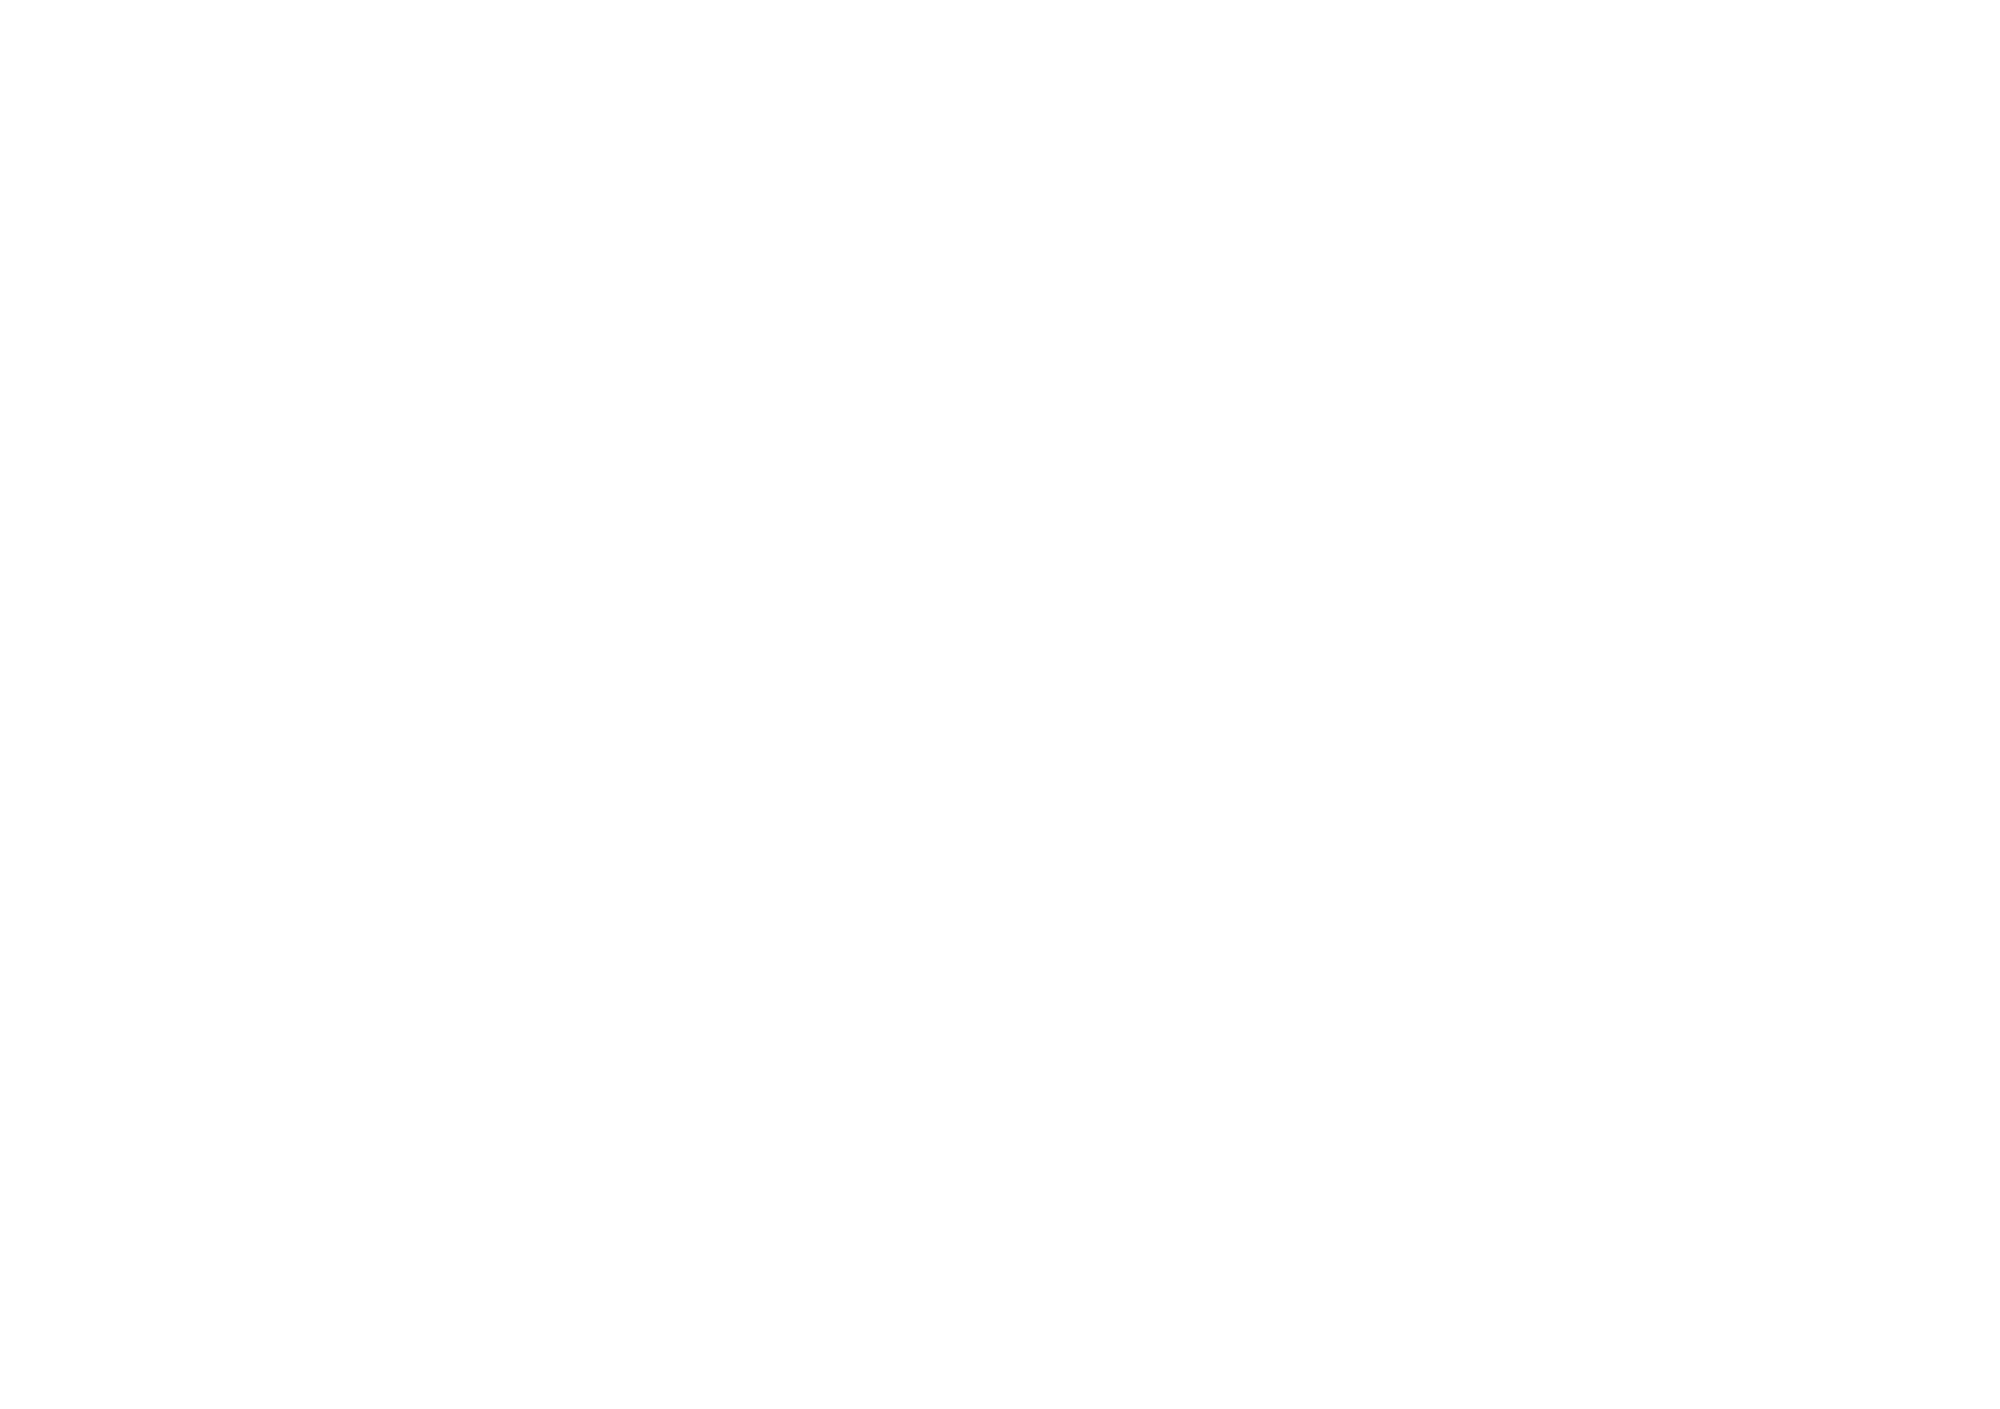 Minutes before a heartbreak is story about red flags. This body of work explores the inner thoughts of a person leading up to a heartbreak; through the use of poetry and playful illustrations. It's treated as an album with each painting in the collection depicted as an individual track; a red flag that shows the viewers a path that's minutes before a heartbreak.   Track 1: Waiting for you / Young  Track 2: Obsessed  Track 3: Somebody's Girl  Track 4: Betrayed  Track 5: My heart's on fire  Track 6: The Break up  Track 7: You warned me  Track 8: Just want to let you know  Track 9: In love and losing it  Track 10: Church Girls